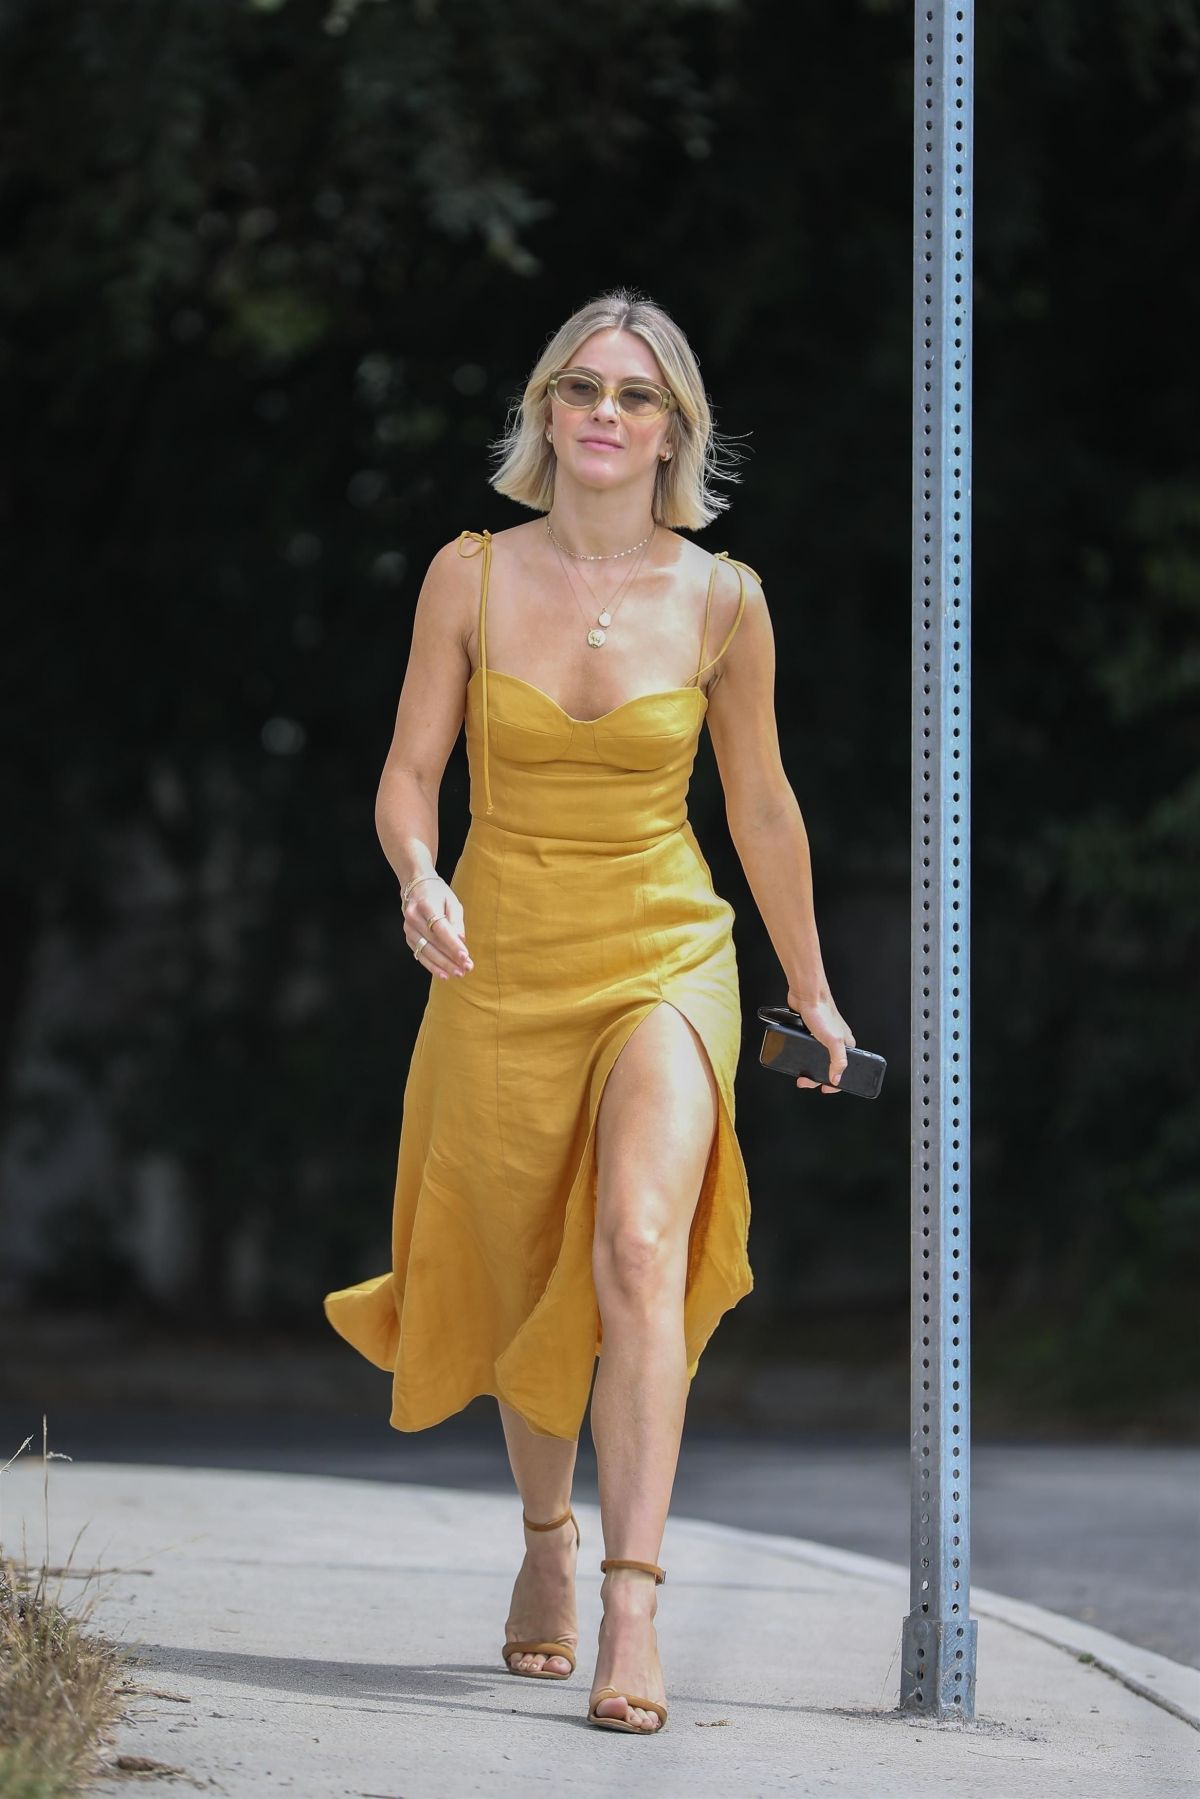 Julianne Hough Heading To A Party In Los Angeles 09 15 2019